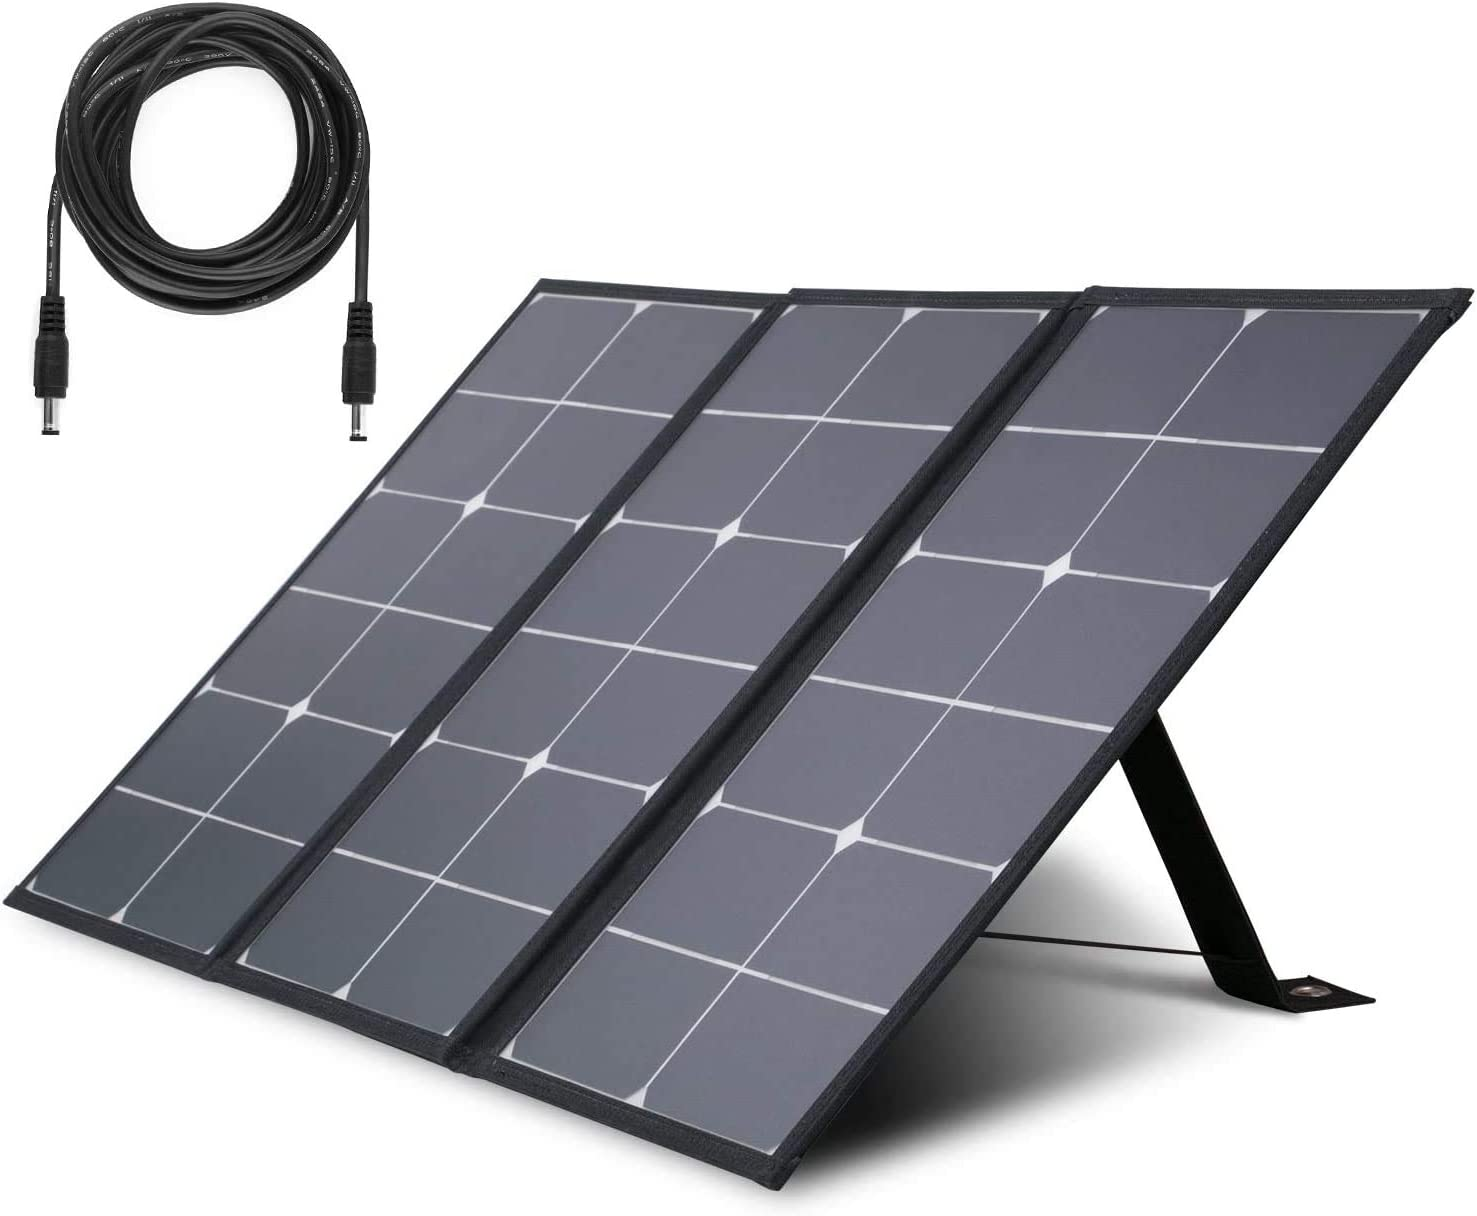 Solar Panels Portable Camping Foldable Solar Charger with QC3.0 Quick Charging USB DC Type C Port Kickstand Extension Cord DIY for Outdoors RV Boat Laptop Tablet GPS iPhone iPad Camera Lamp 60W